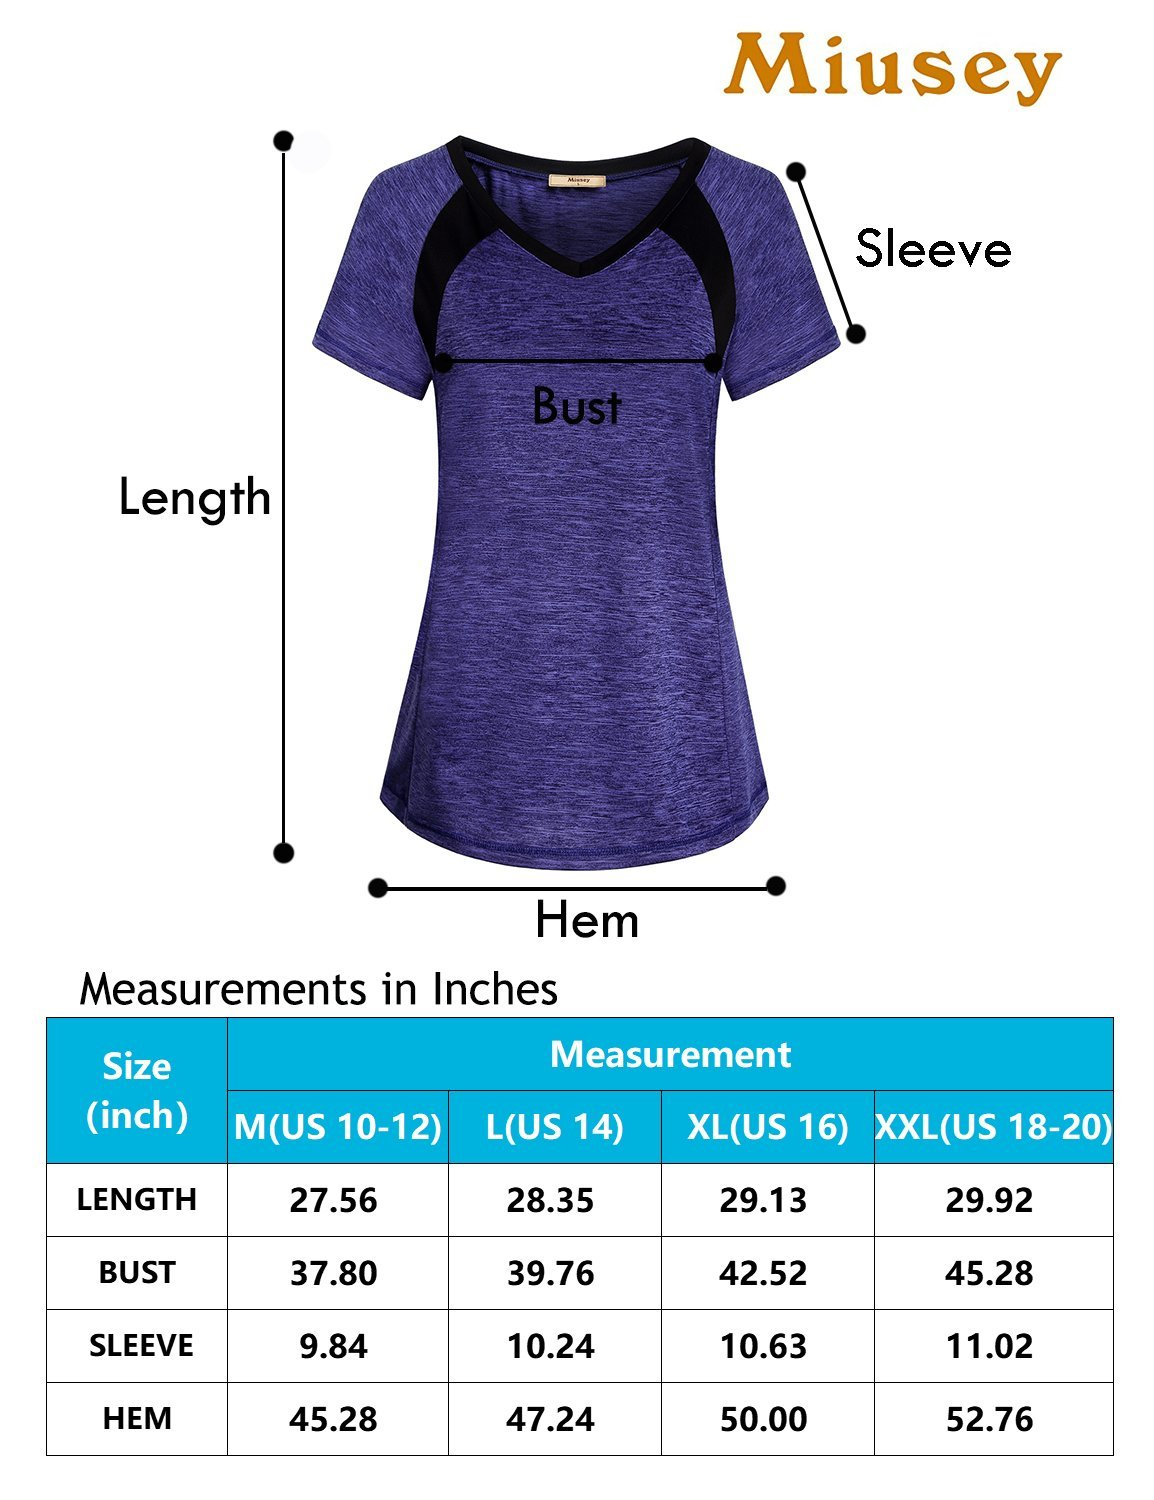 Miusey Sports Shirts for Women, Ladies Gym Workout Short Sleeve V Neck Tee Activewear Raglan Top Jr Clothes Color Block Plain Outwear Classic Heathered Black M by Miusey (Image #3)